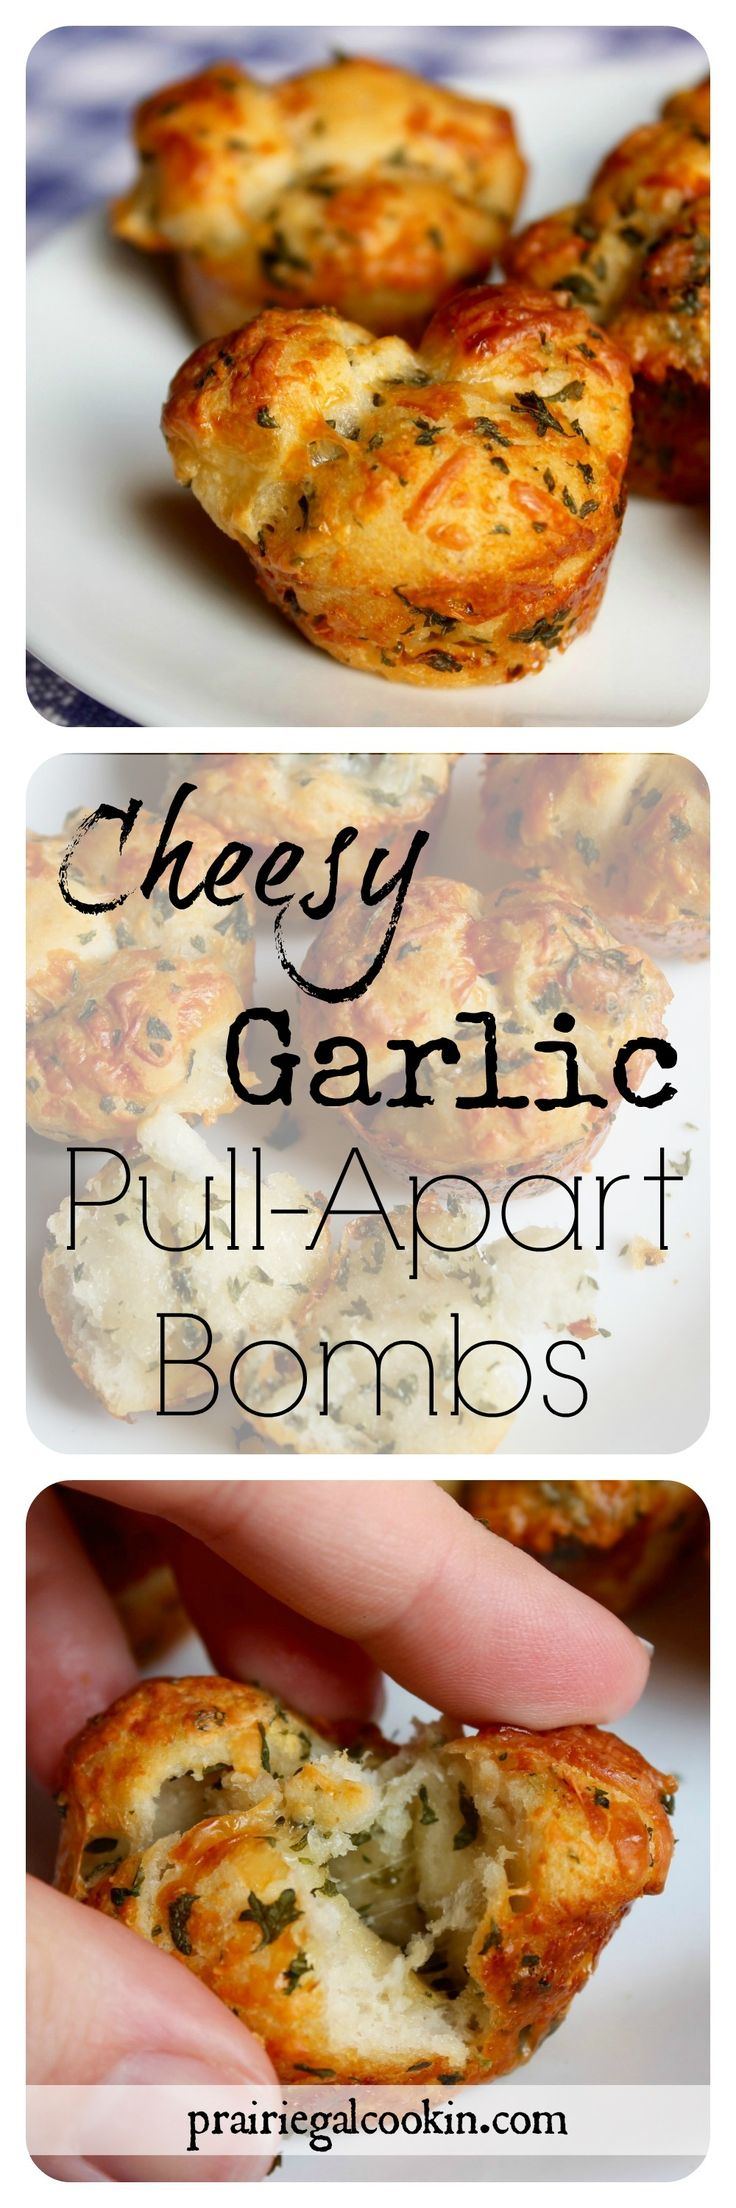 Cheesy Garlic Pull-Apart Bombs - Prairie Gal Cookin' #cheese #garlic